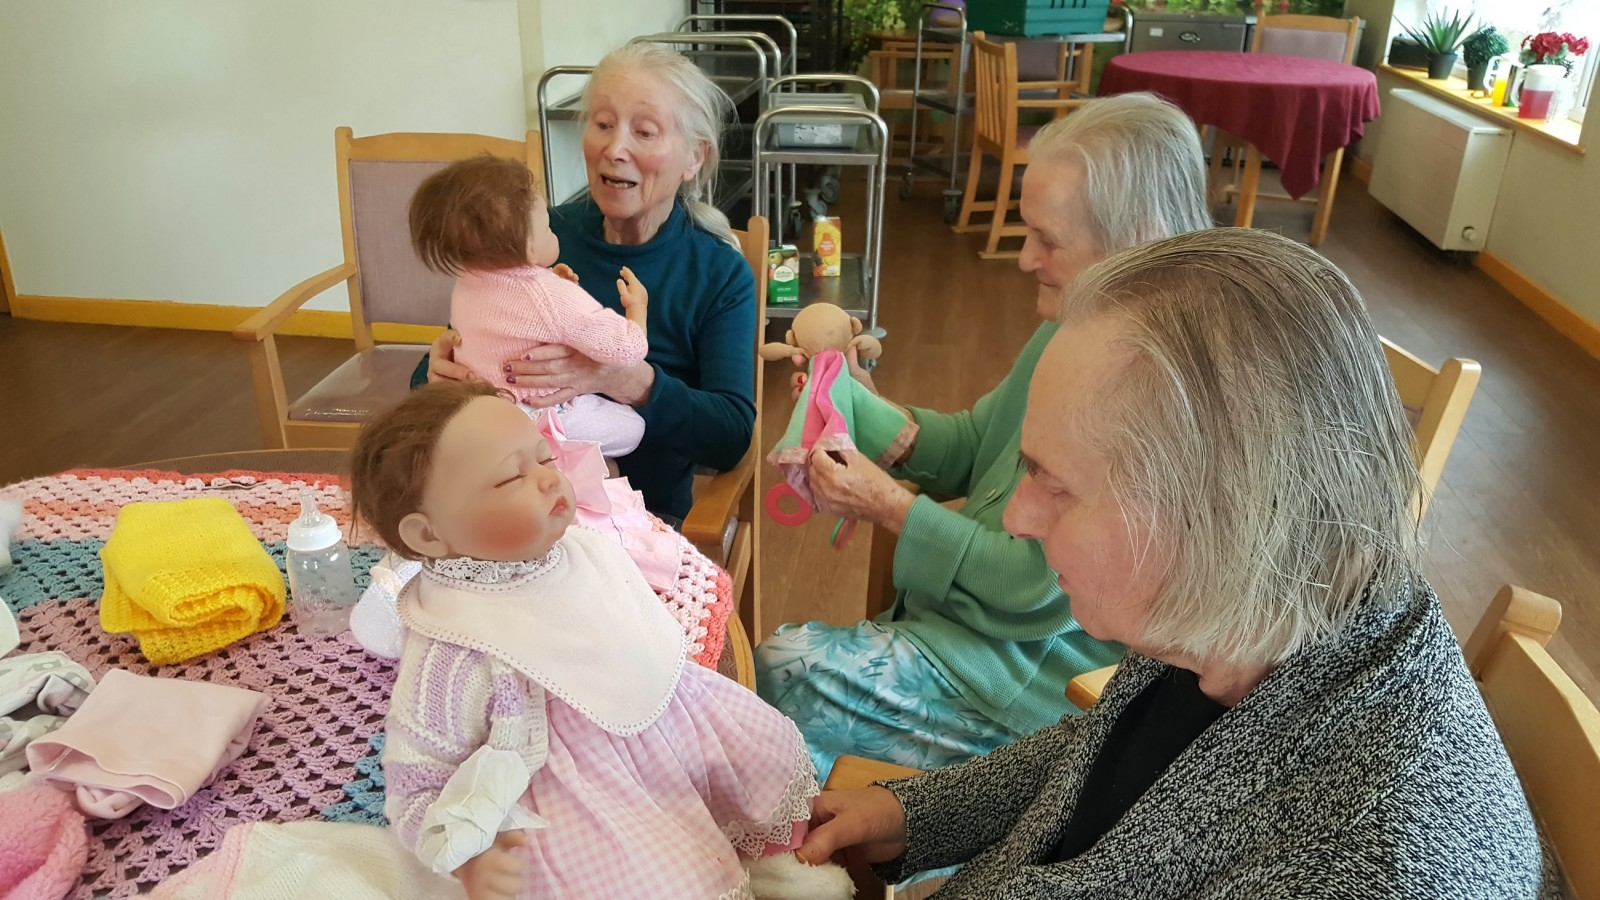 Dementia Care Home Provides New Form Of Therapy For Residents - By Giving Them Baby Dolls To Look After